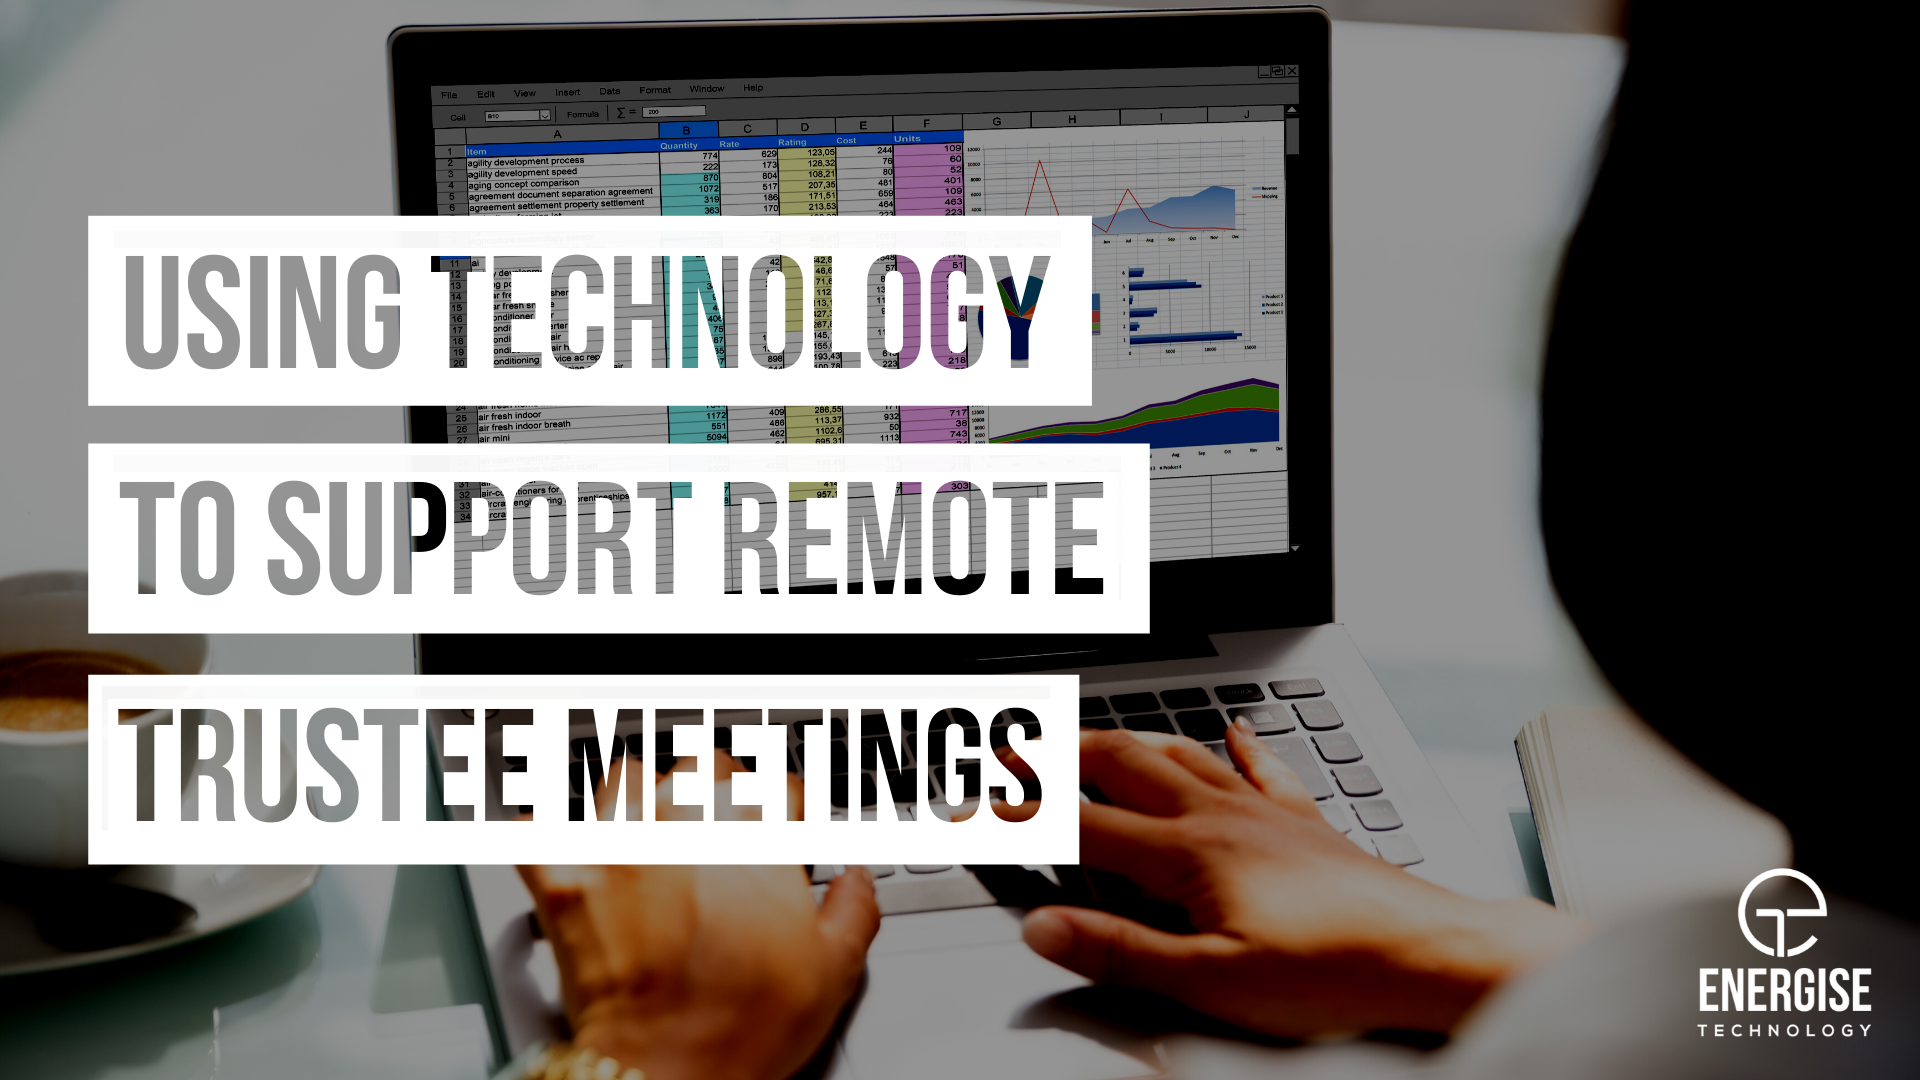 Using technology to support remote trustee meetings